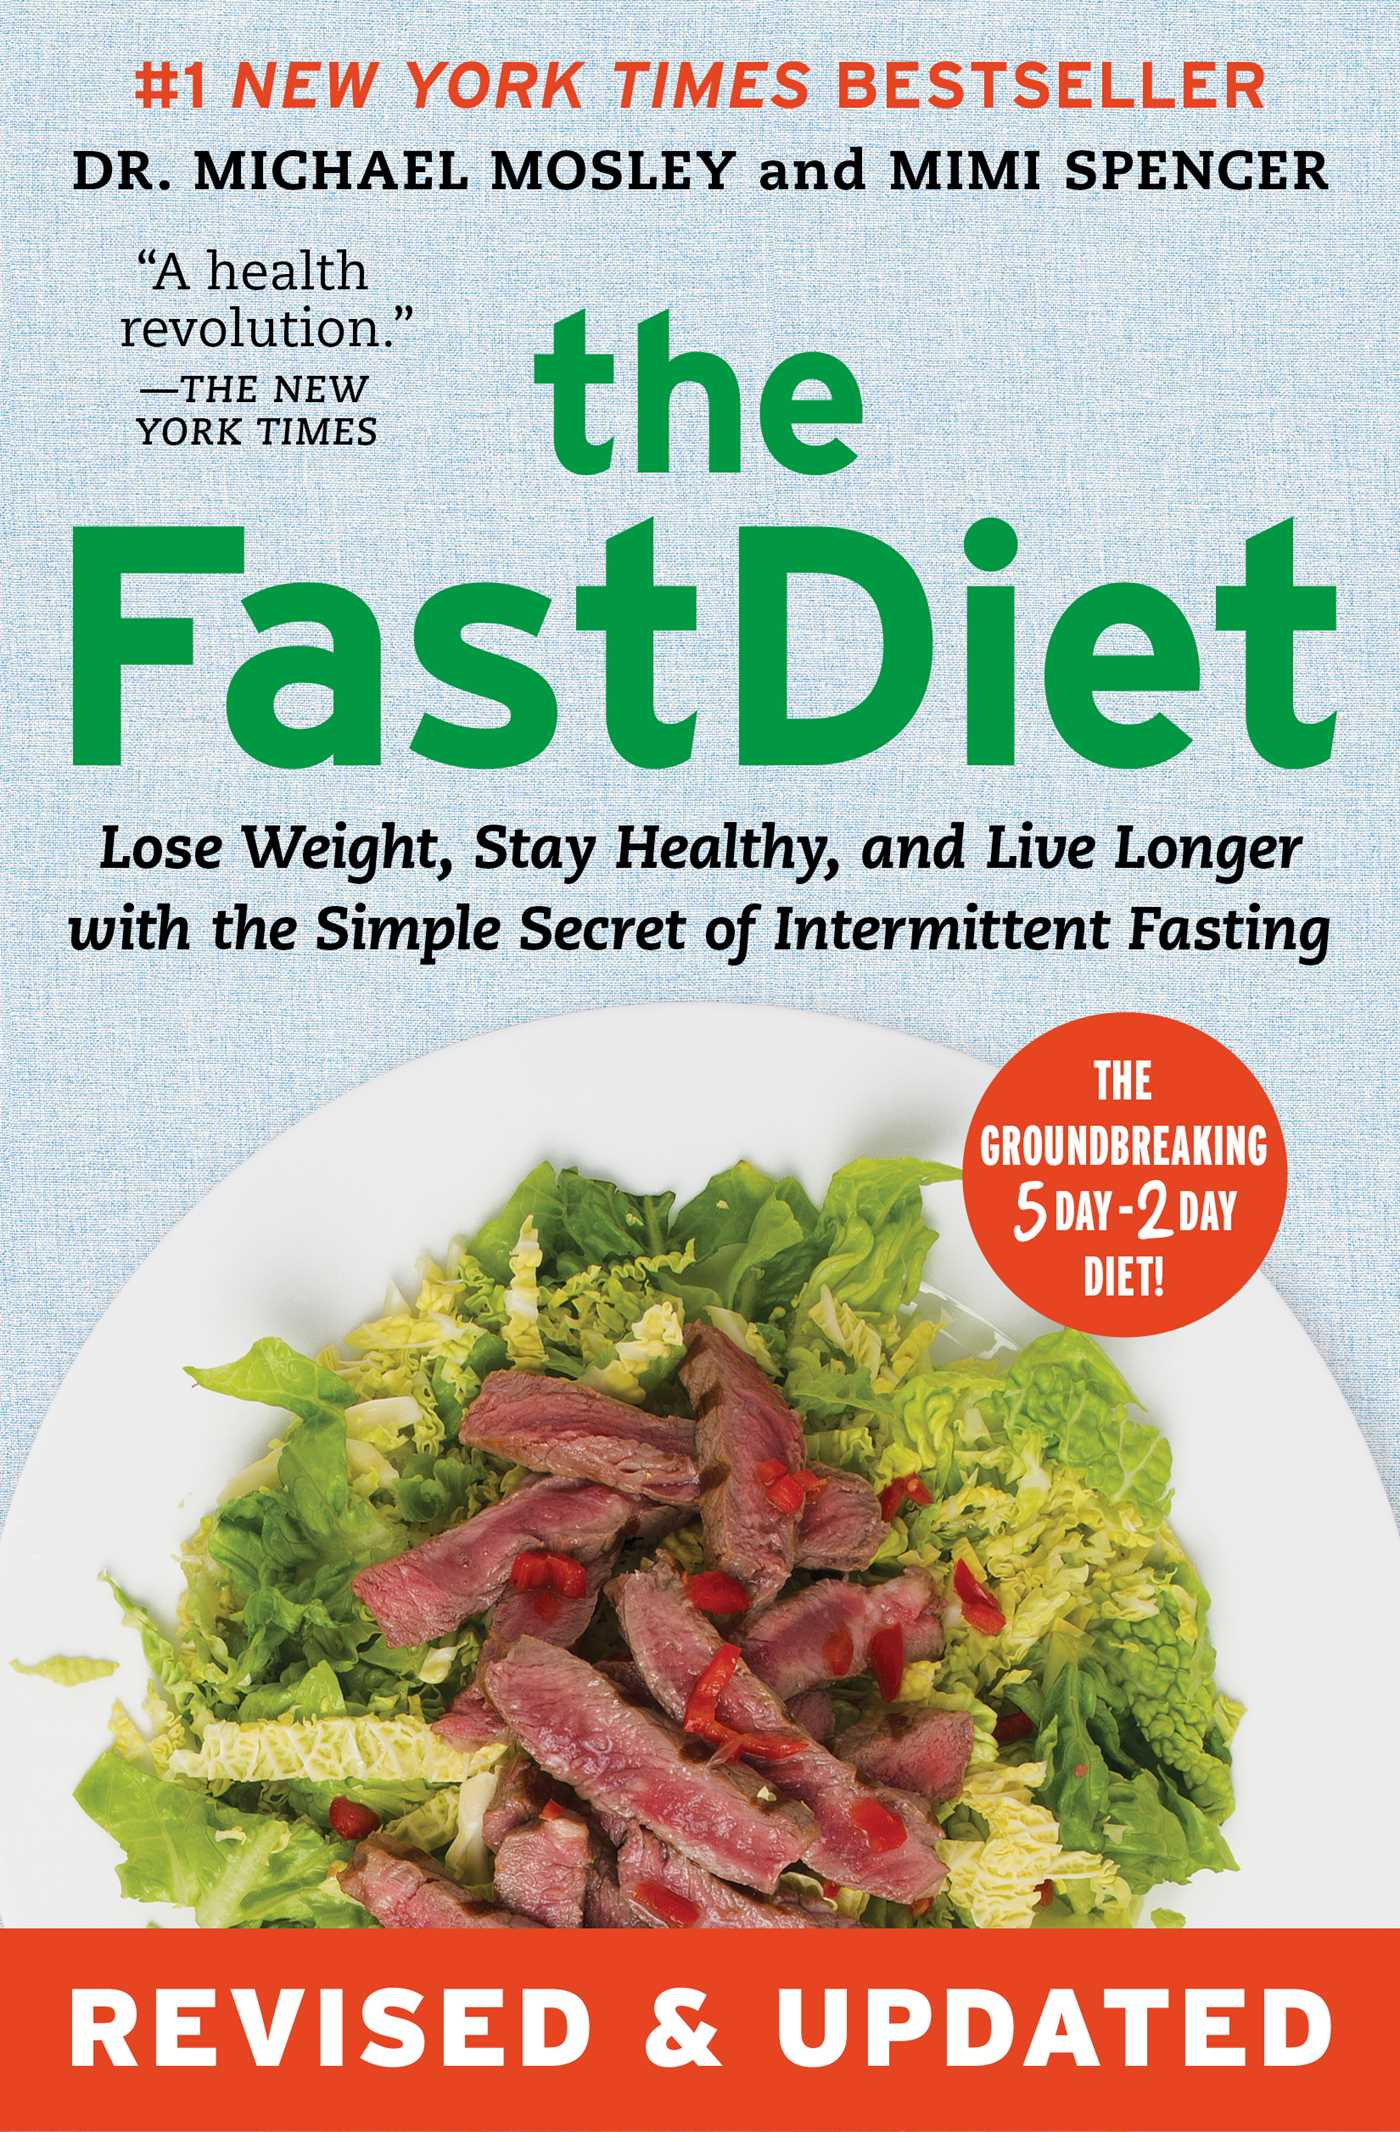 Fastdiet-revised-updated-9781501102011_hr